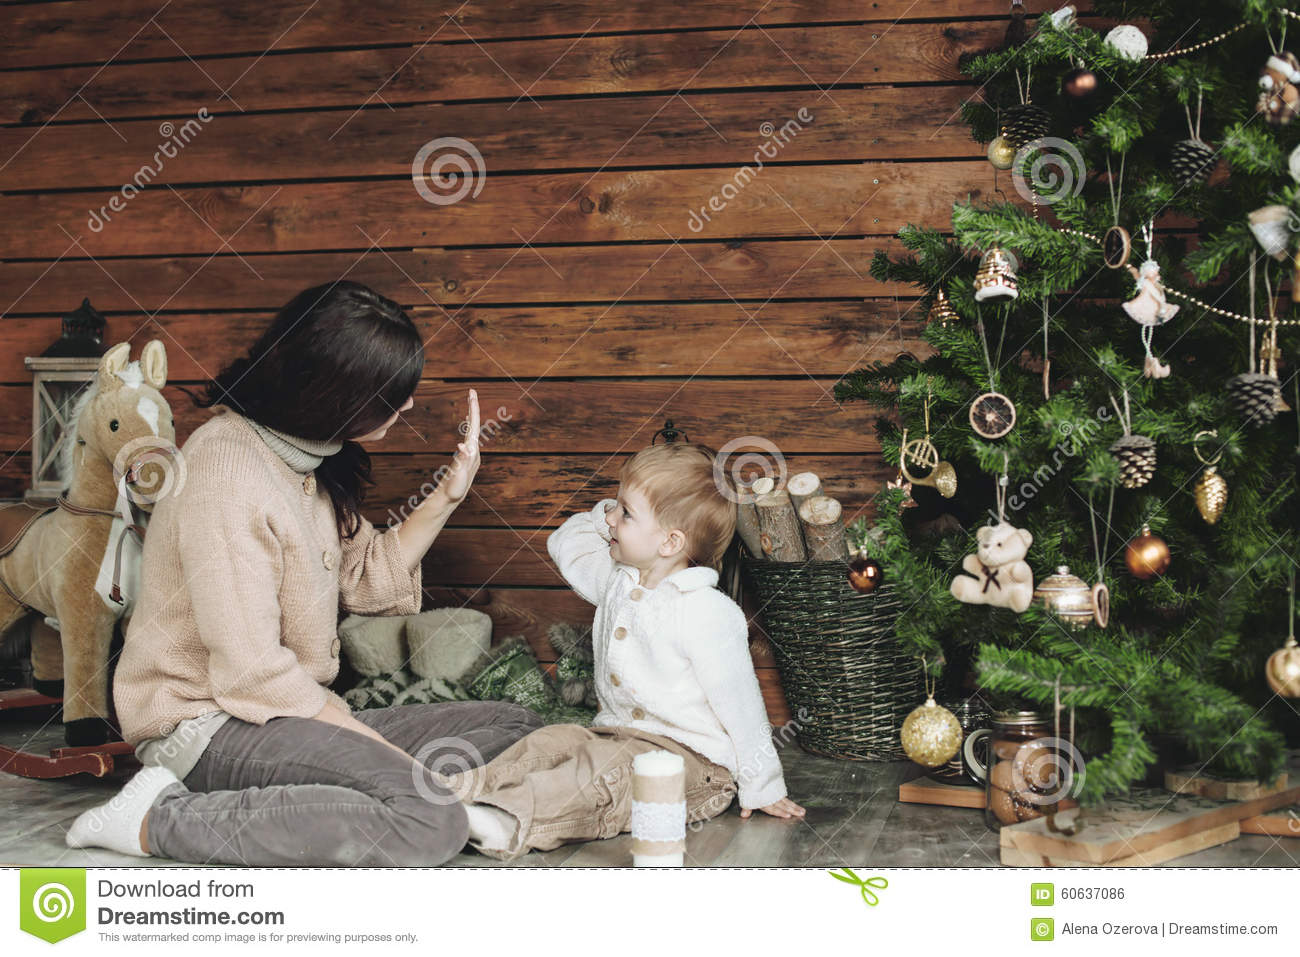 Christmas stock photo. Image of home, clothing, playing - 60637086